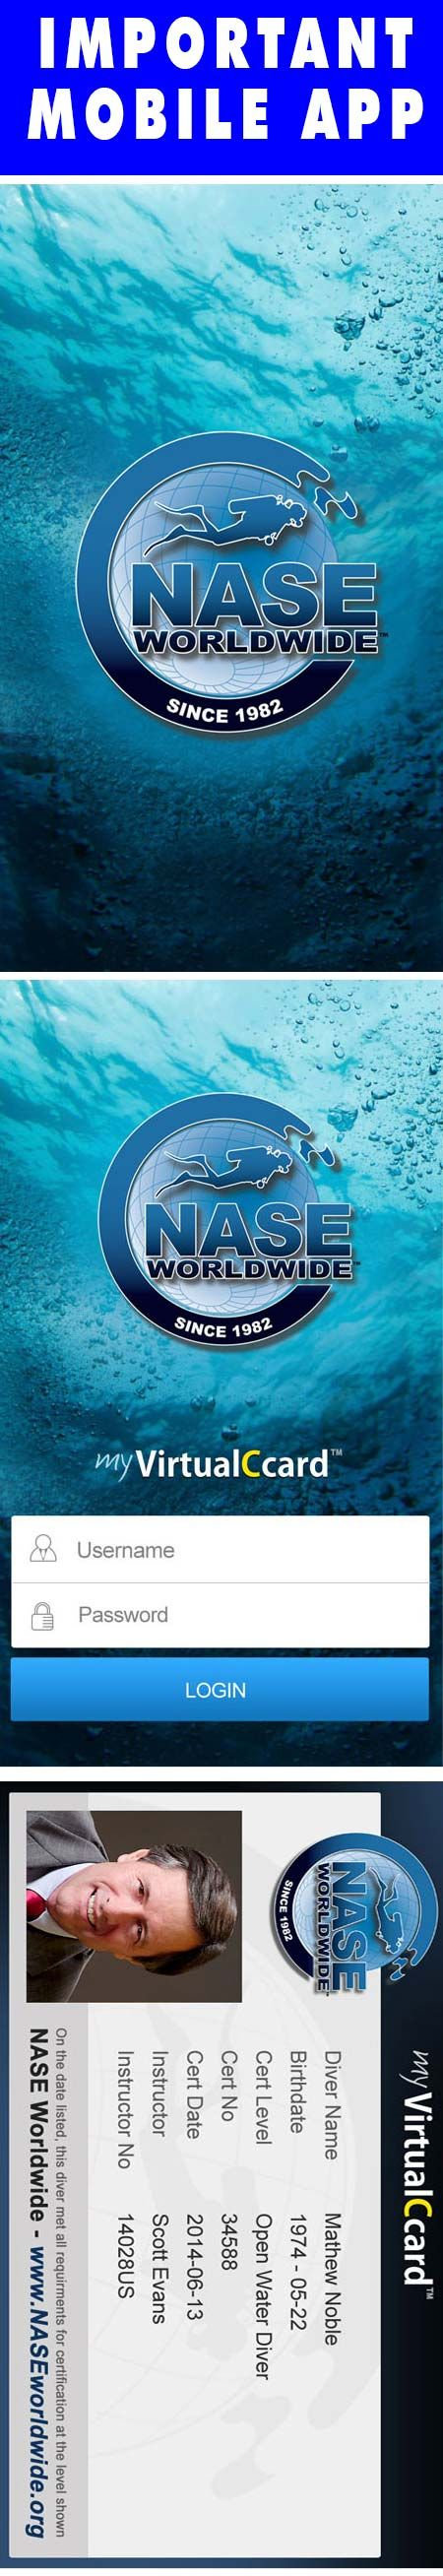 Never forget your certification card at home again. The NASE Worldwide VirtualCcard APP conveniently provides NASE certified divers instant access to their SCUBA certification cards issued by NASE. The APP lists all of your scuba certifications and syncs with the NASE system to provide authenticated credentials.